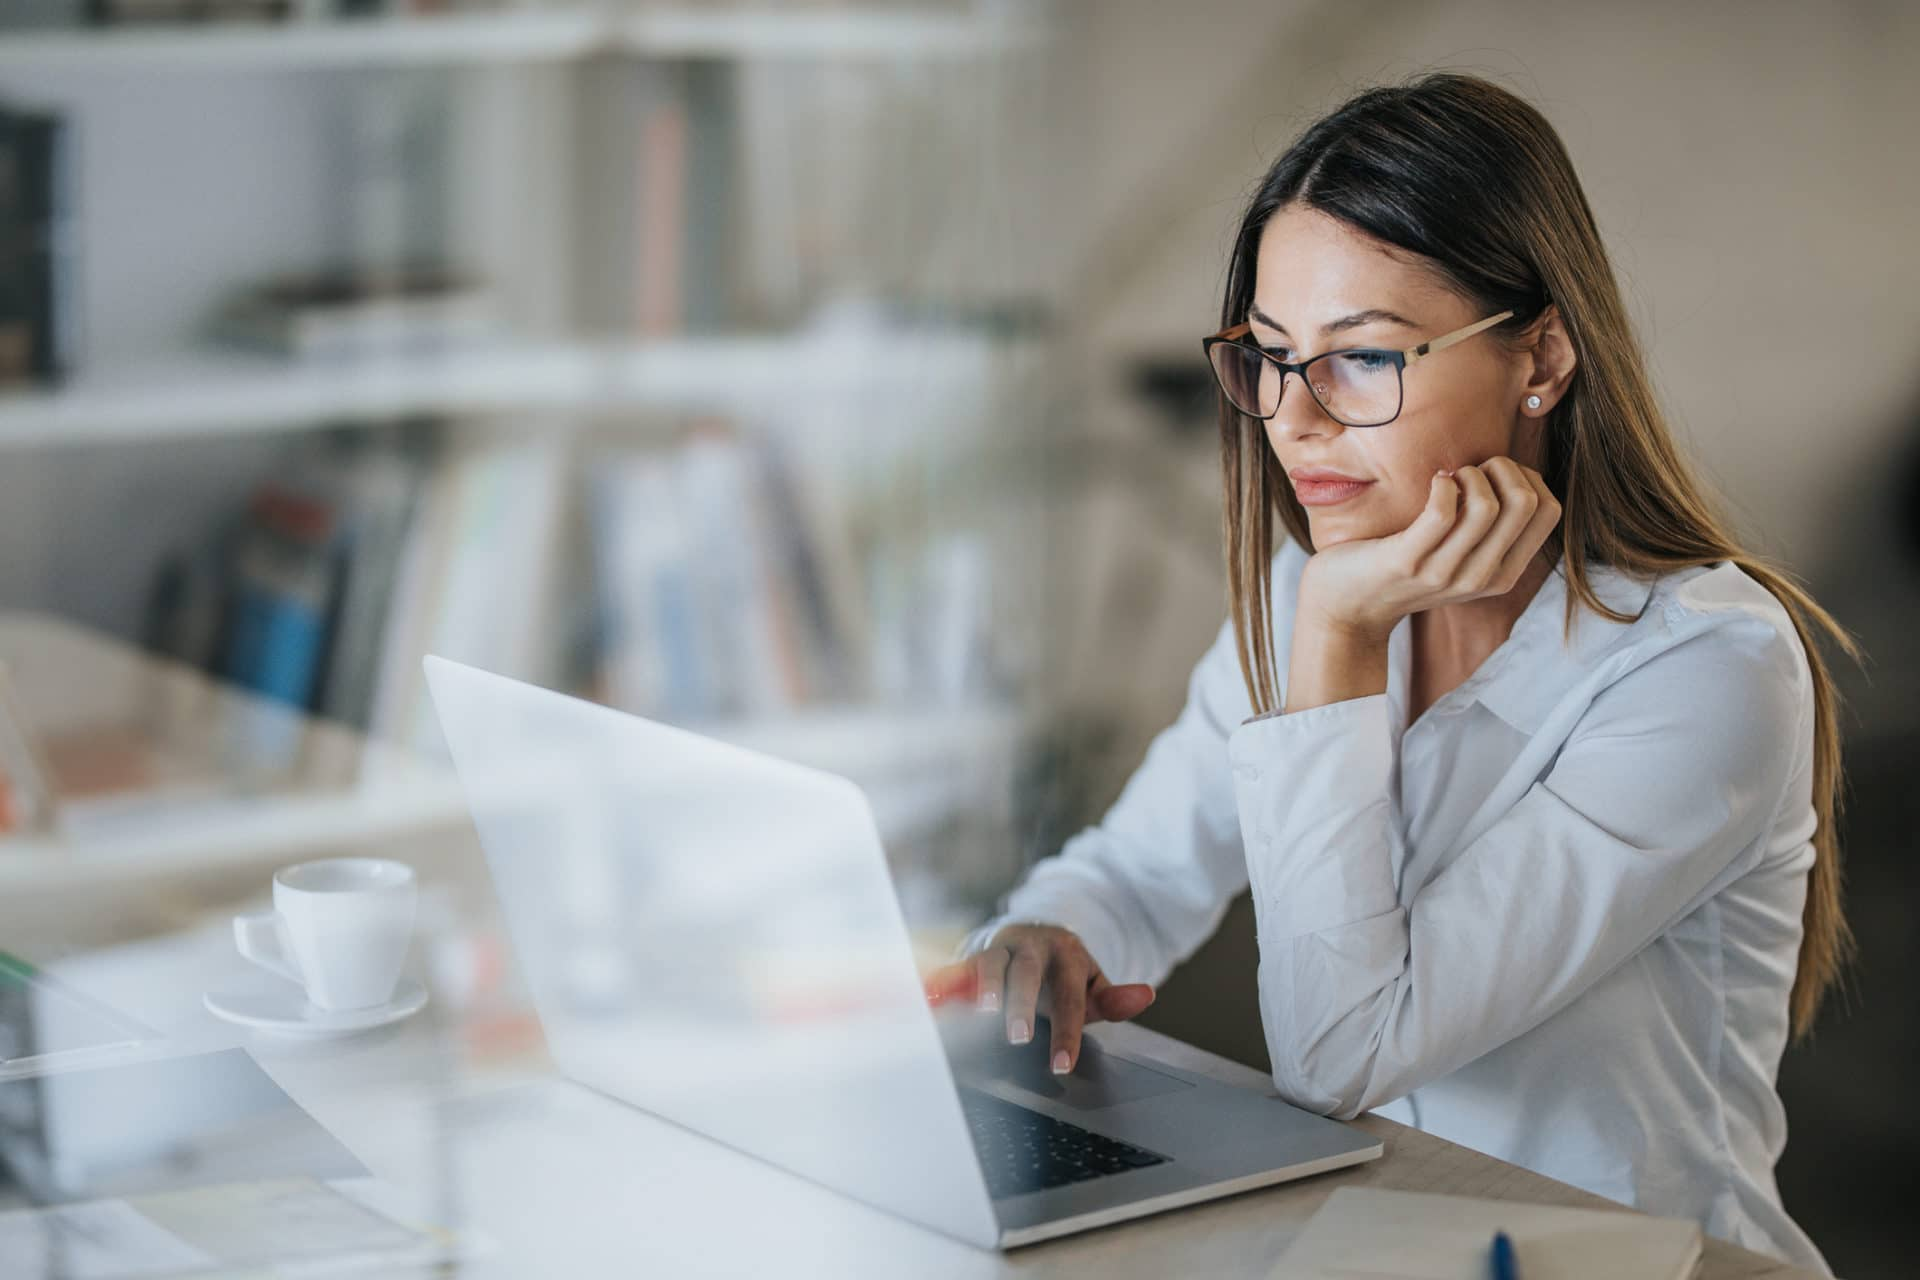 Businesswoman Working From Laptop With Managed IT Services